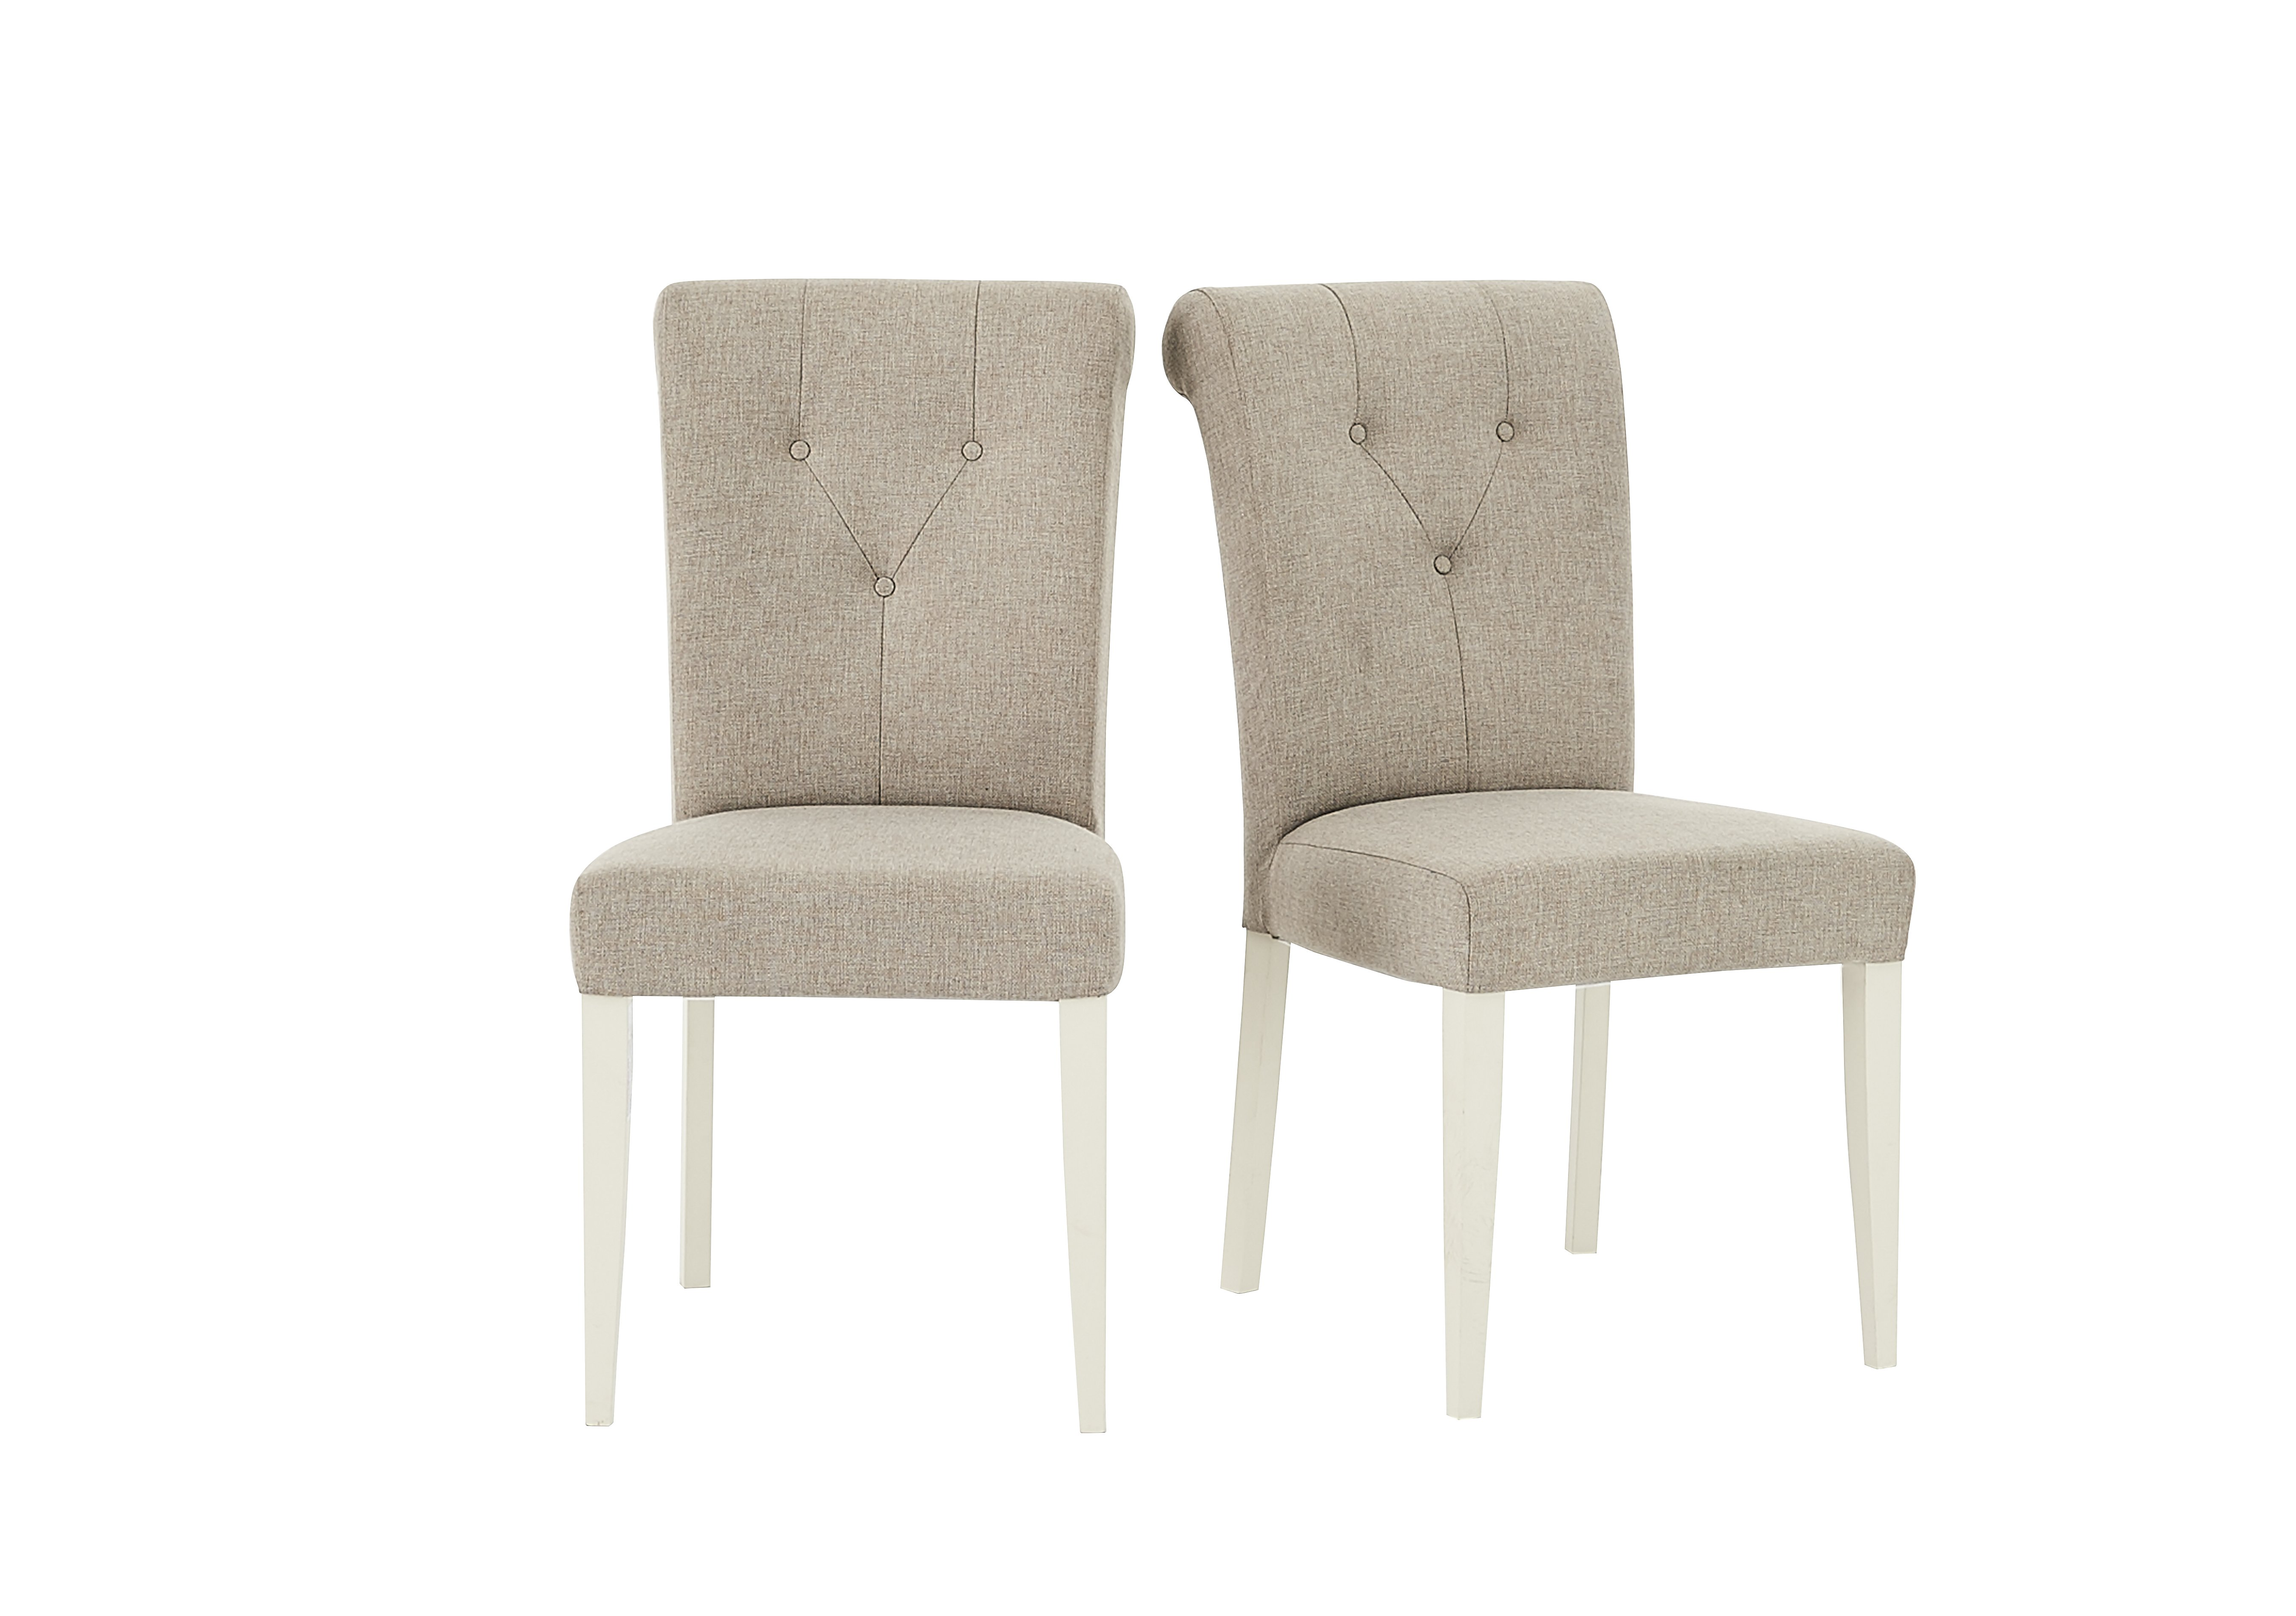 Annecy Pair of Upholstered Dining Chairs Furniture Village